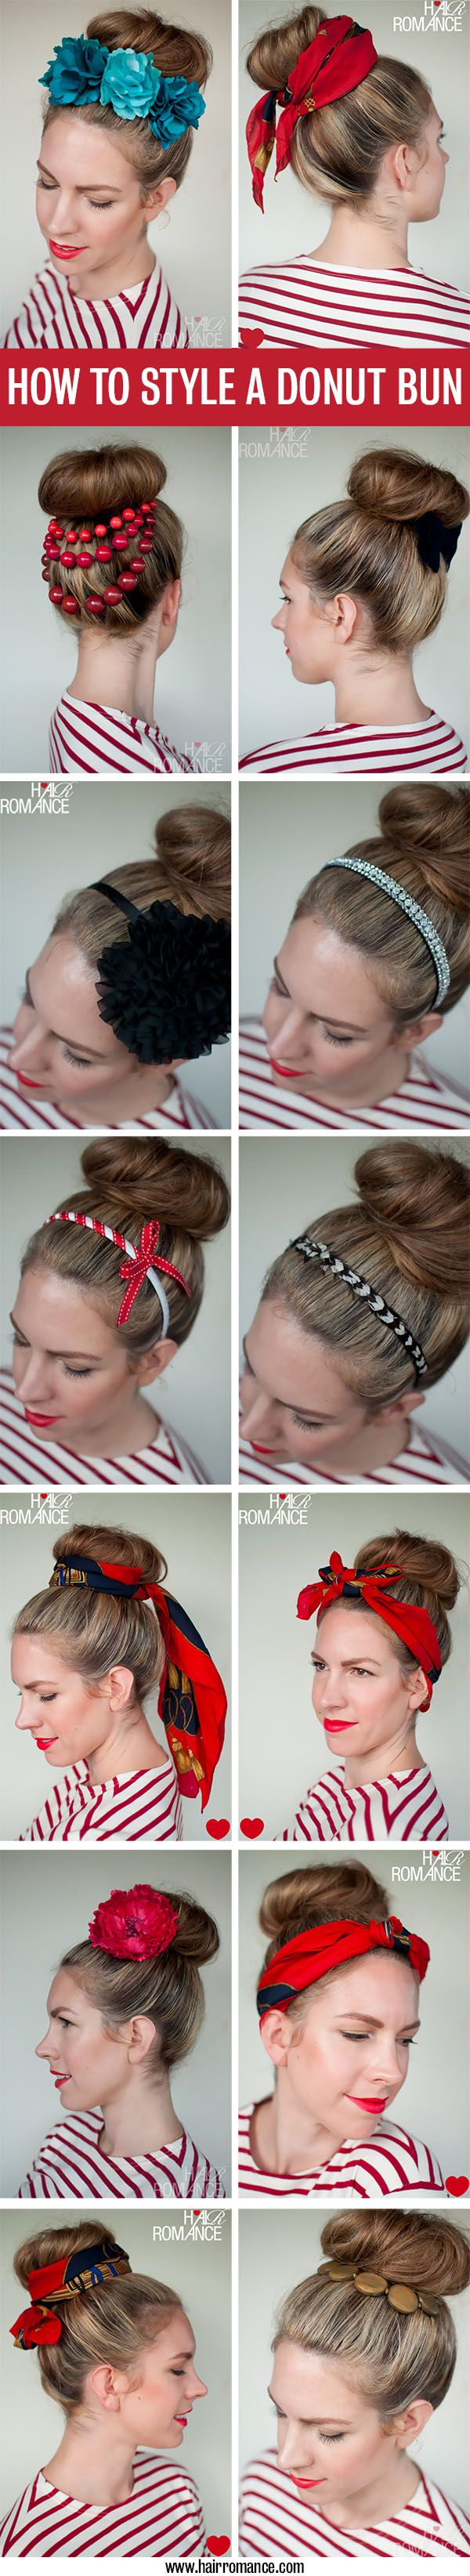 how to make a donut hair style